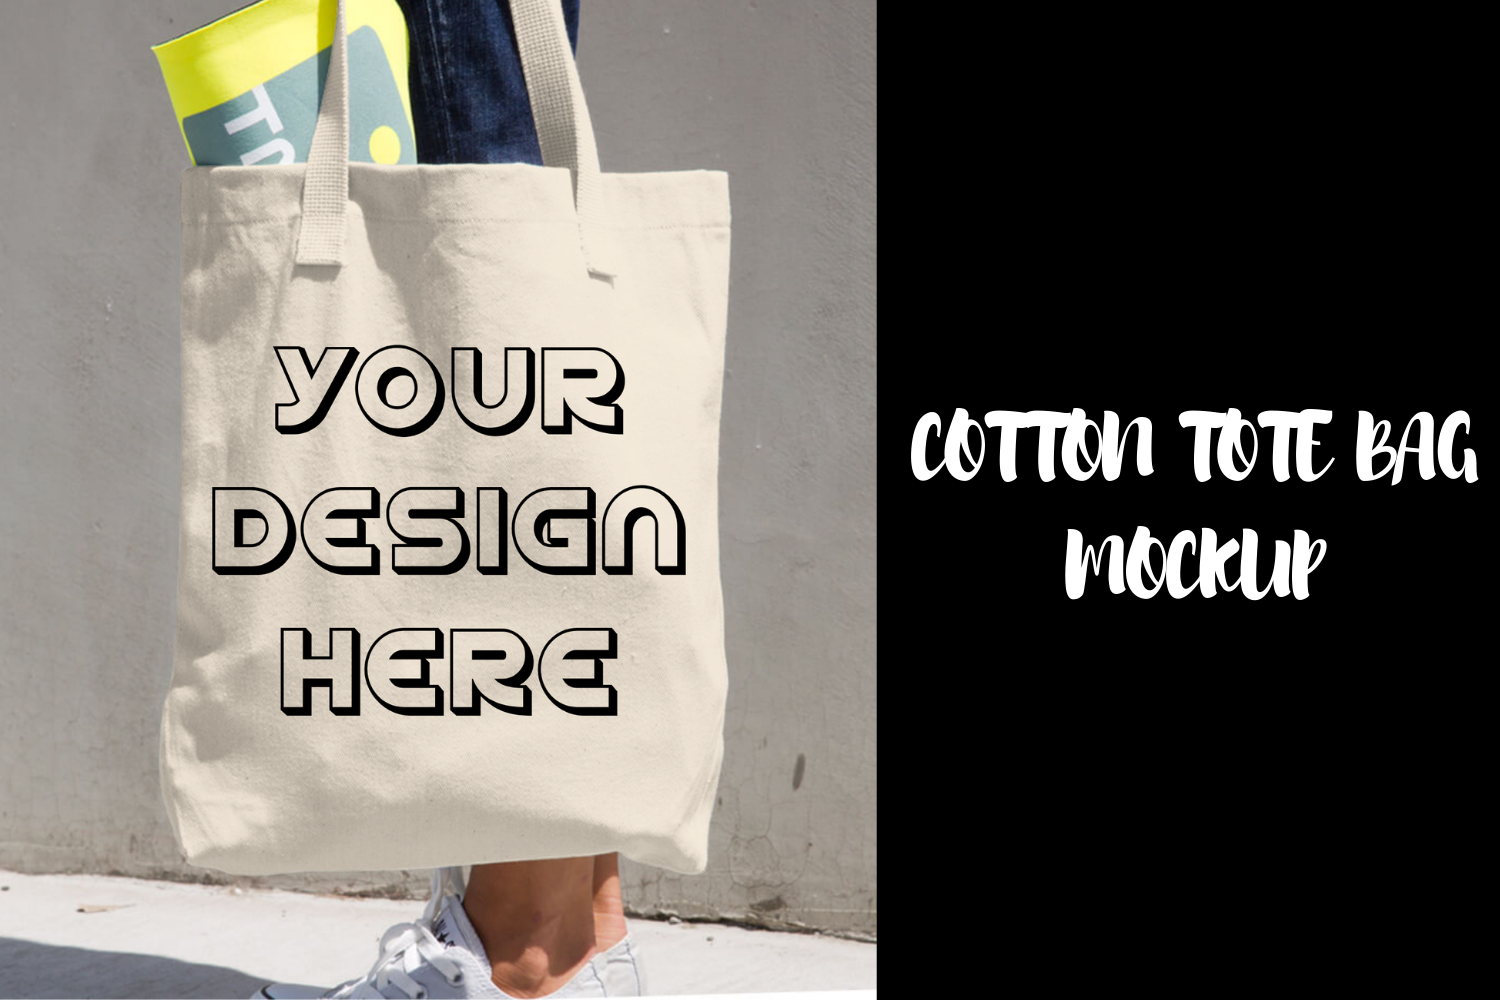 Download Free Cotton Tote Bag Mockup Realistic Graphic By Mockup Venue for Cricut Explore, Silhouette and other cutting machines.